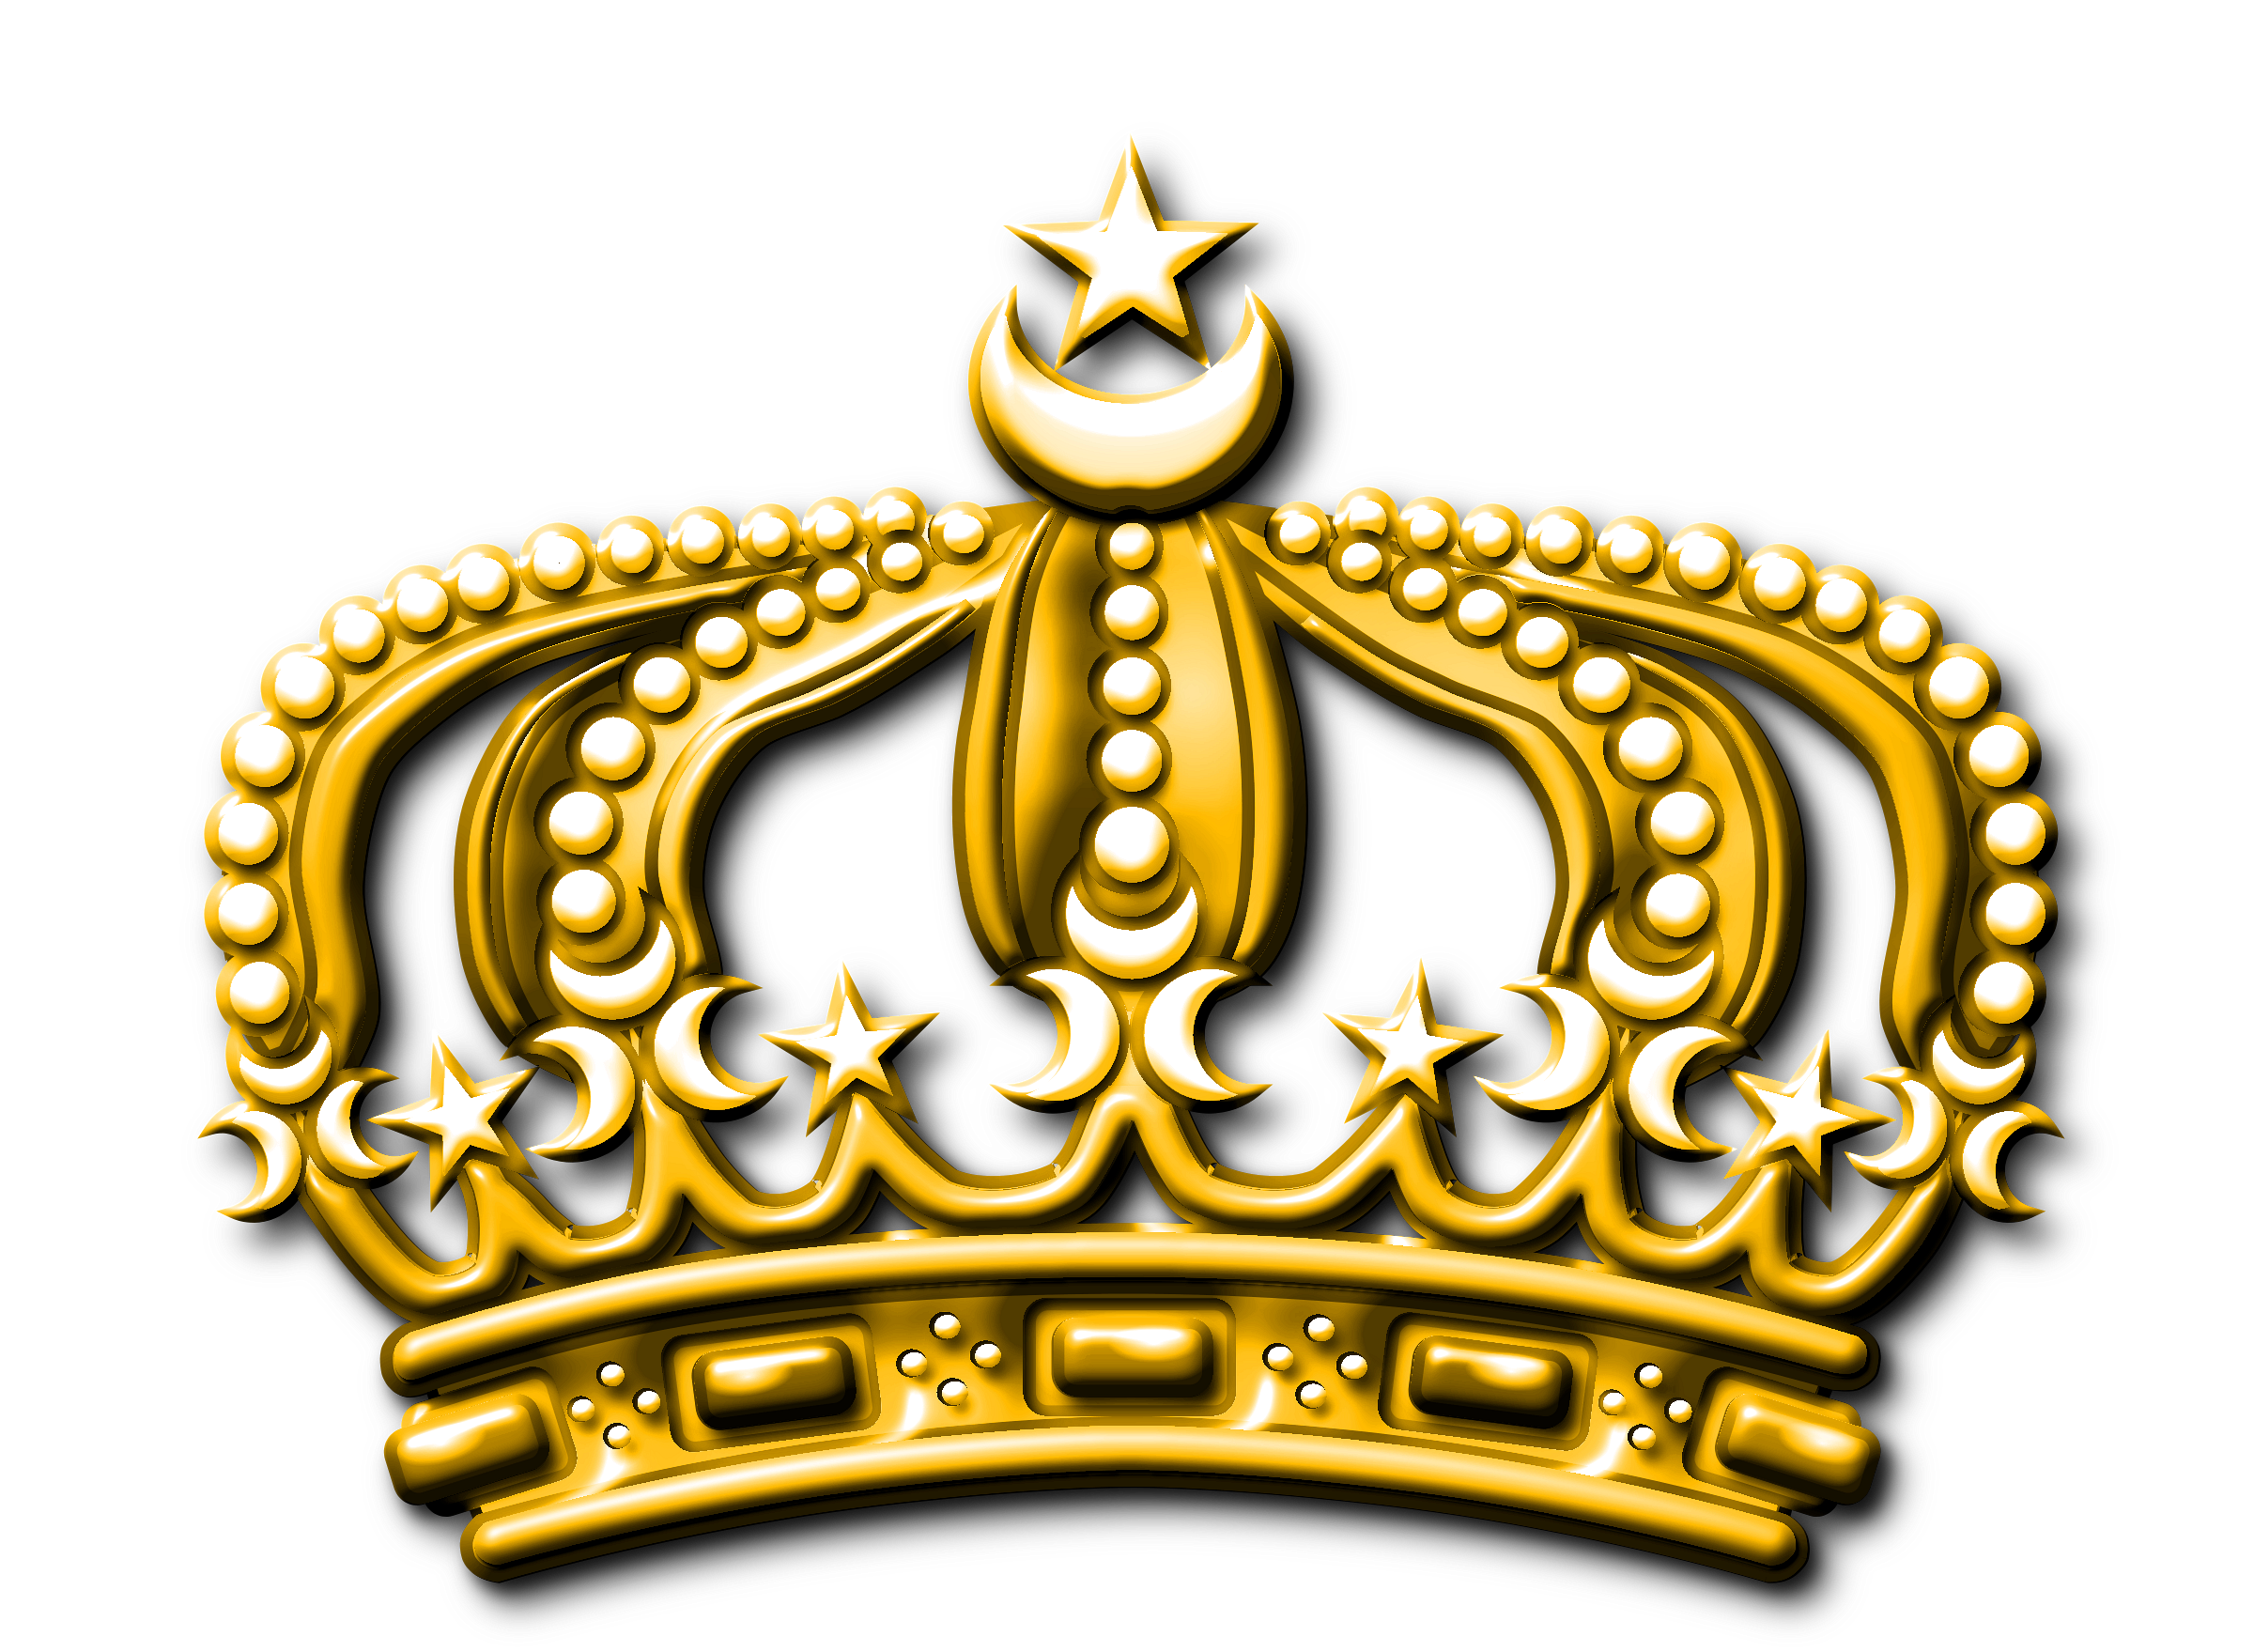 Star crown clipart graphic royalty free Gold Crown Clipart - Clipart Kid graphic royalty free